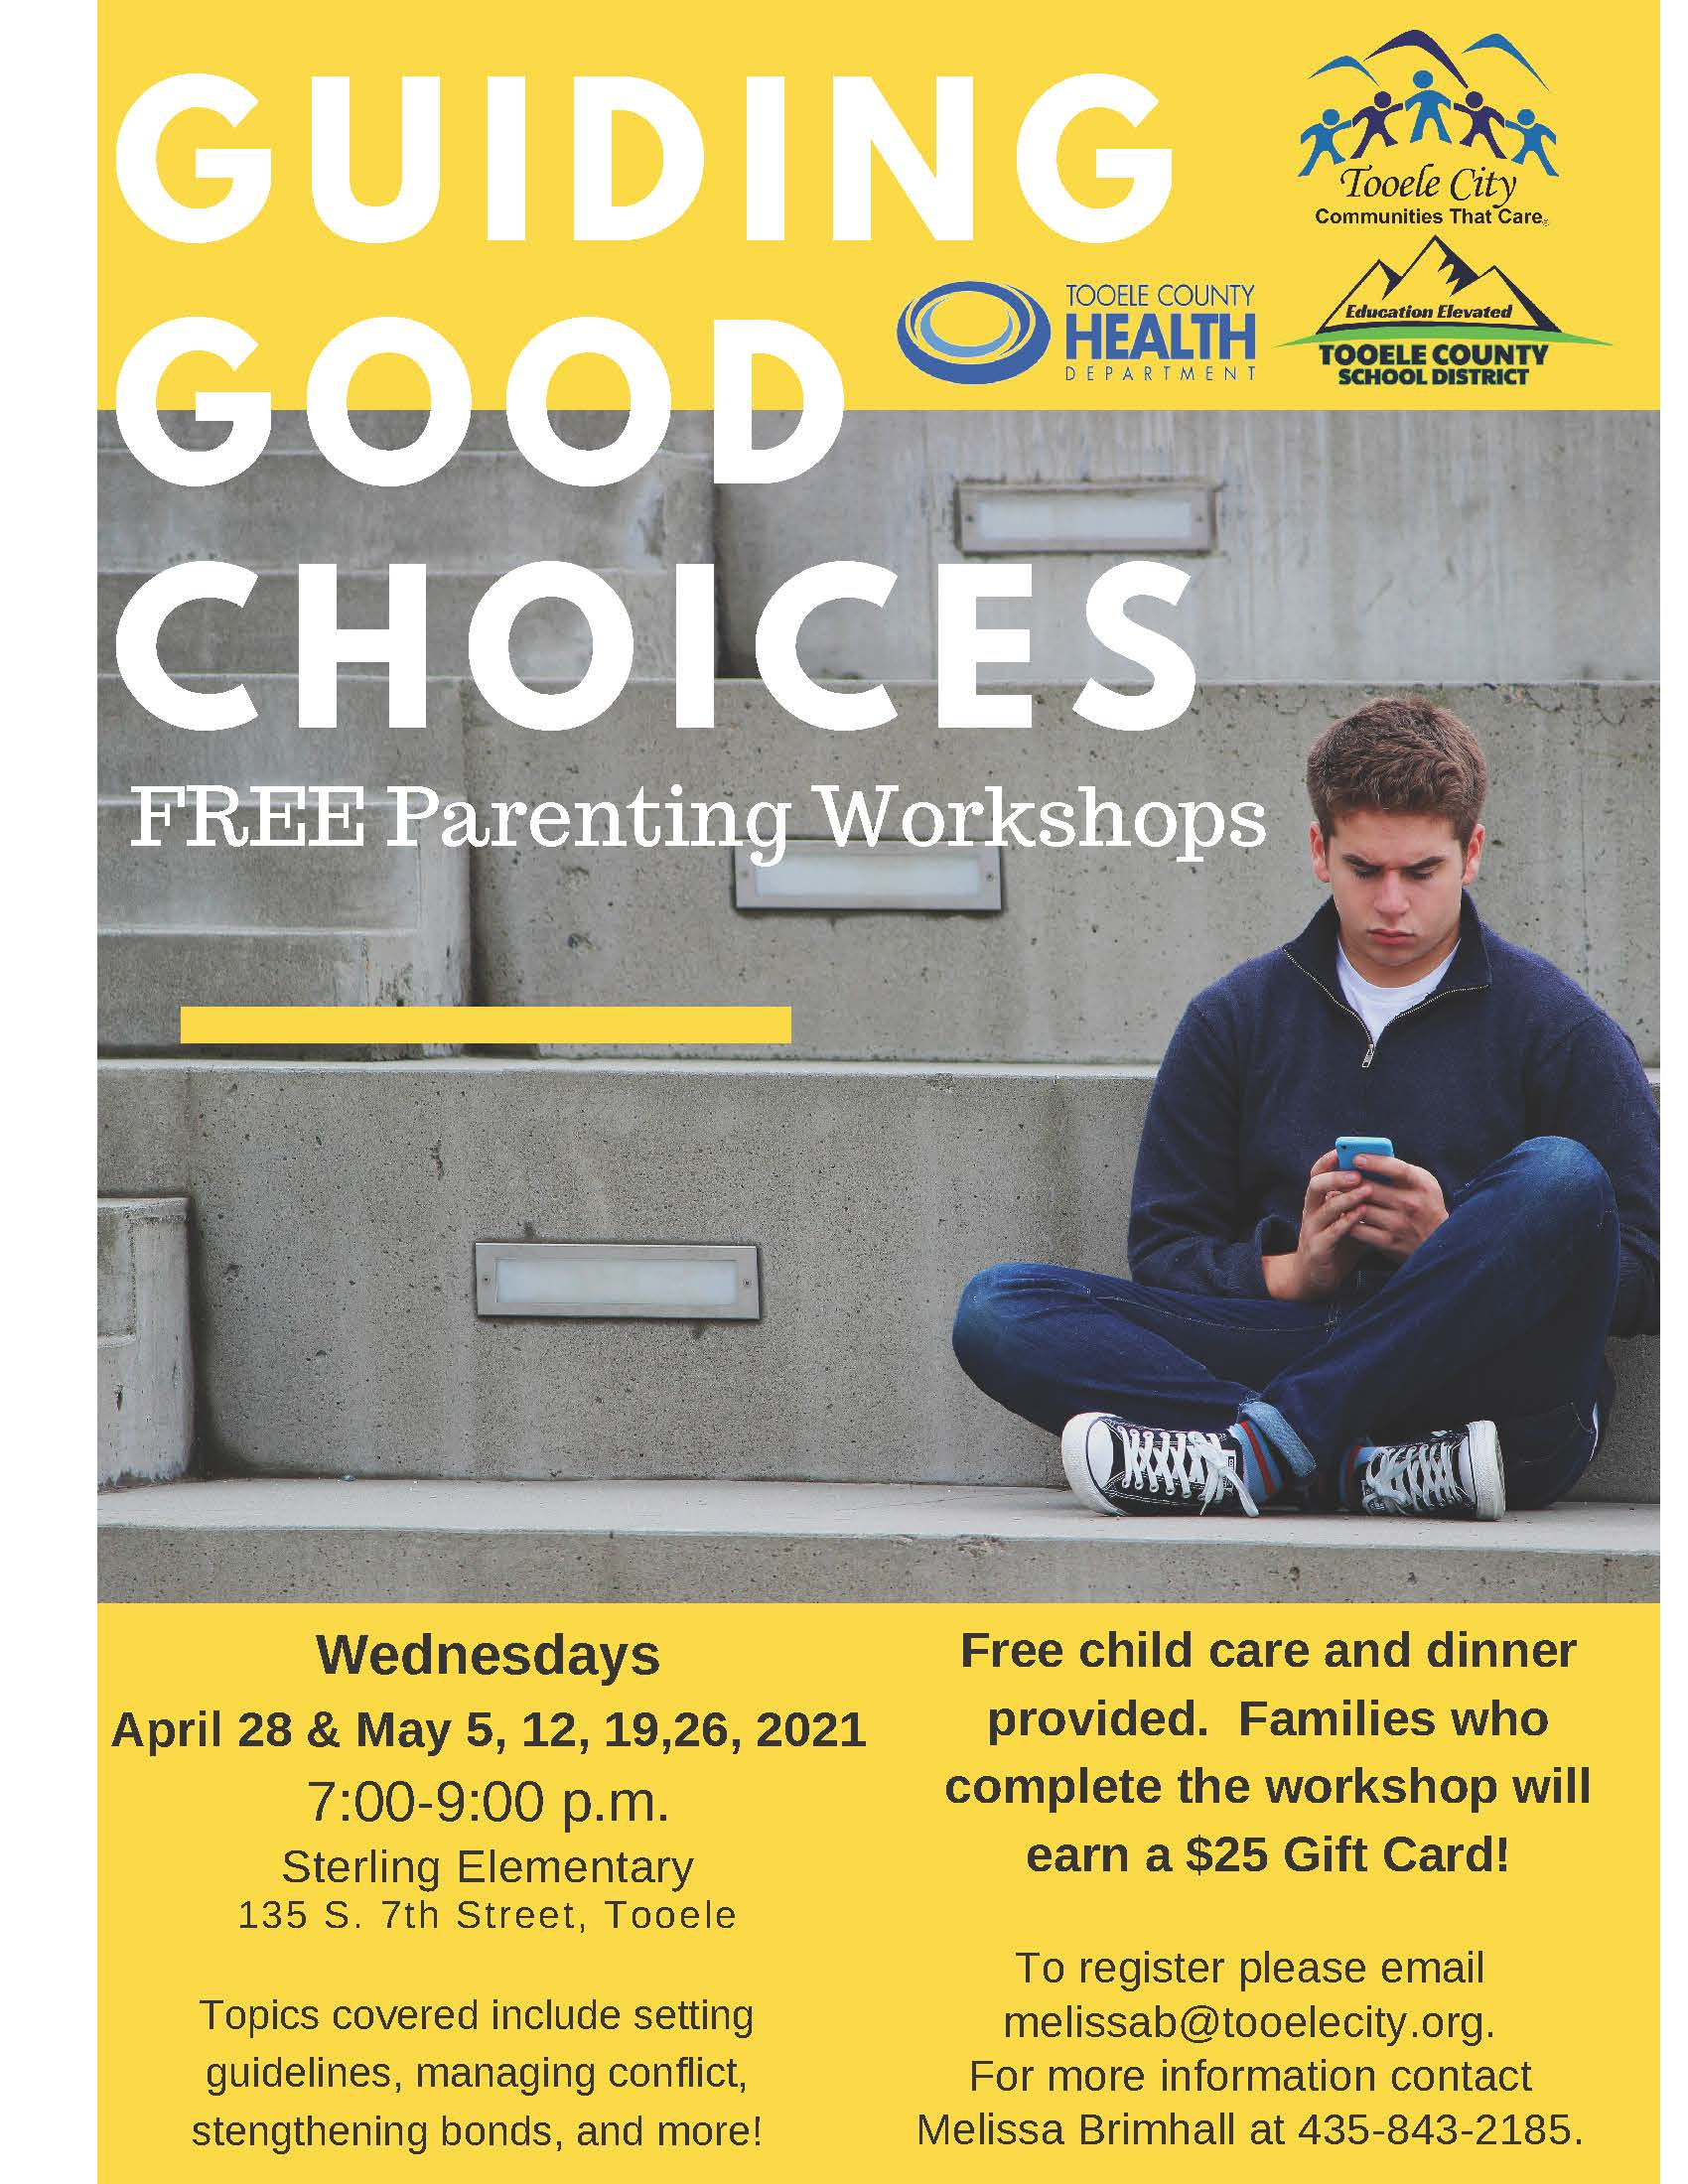 Guiding Good Choices FREE Parenting & Family Workshops (Wednesday Nights) @ Sterling Elementary School | Tooele | Utah | United States